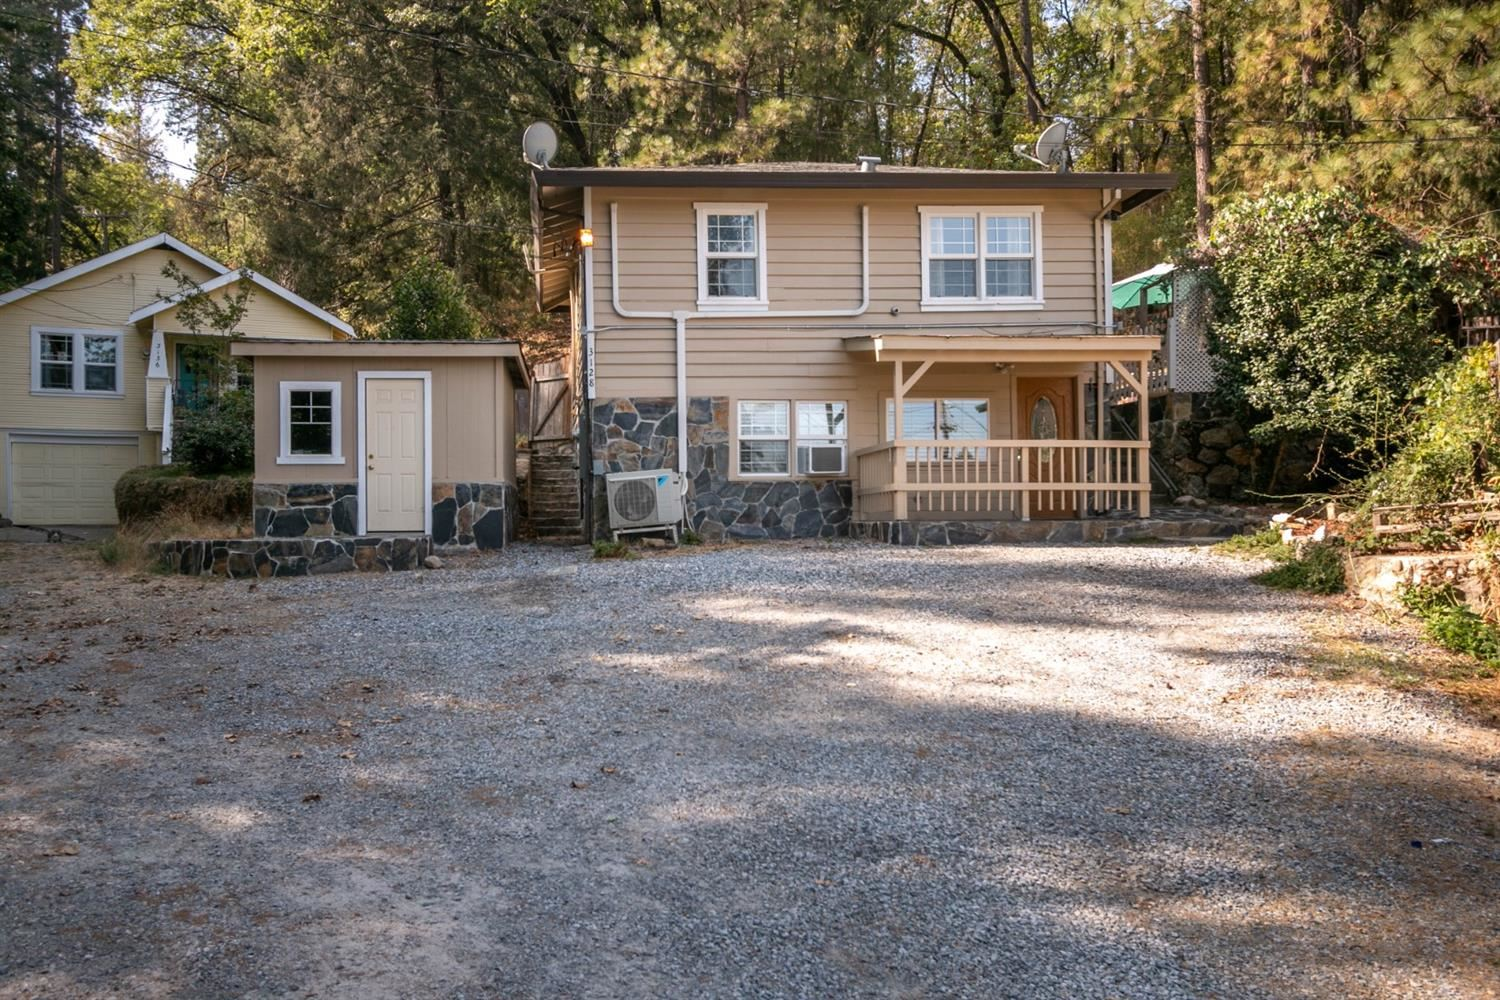 3128 Baco Drive, Placerville, CA 95667 - MLS#: 221120266